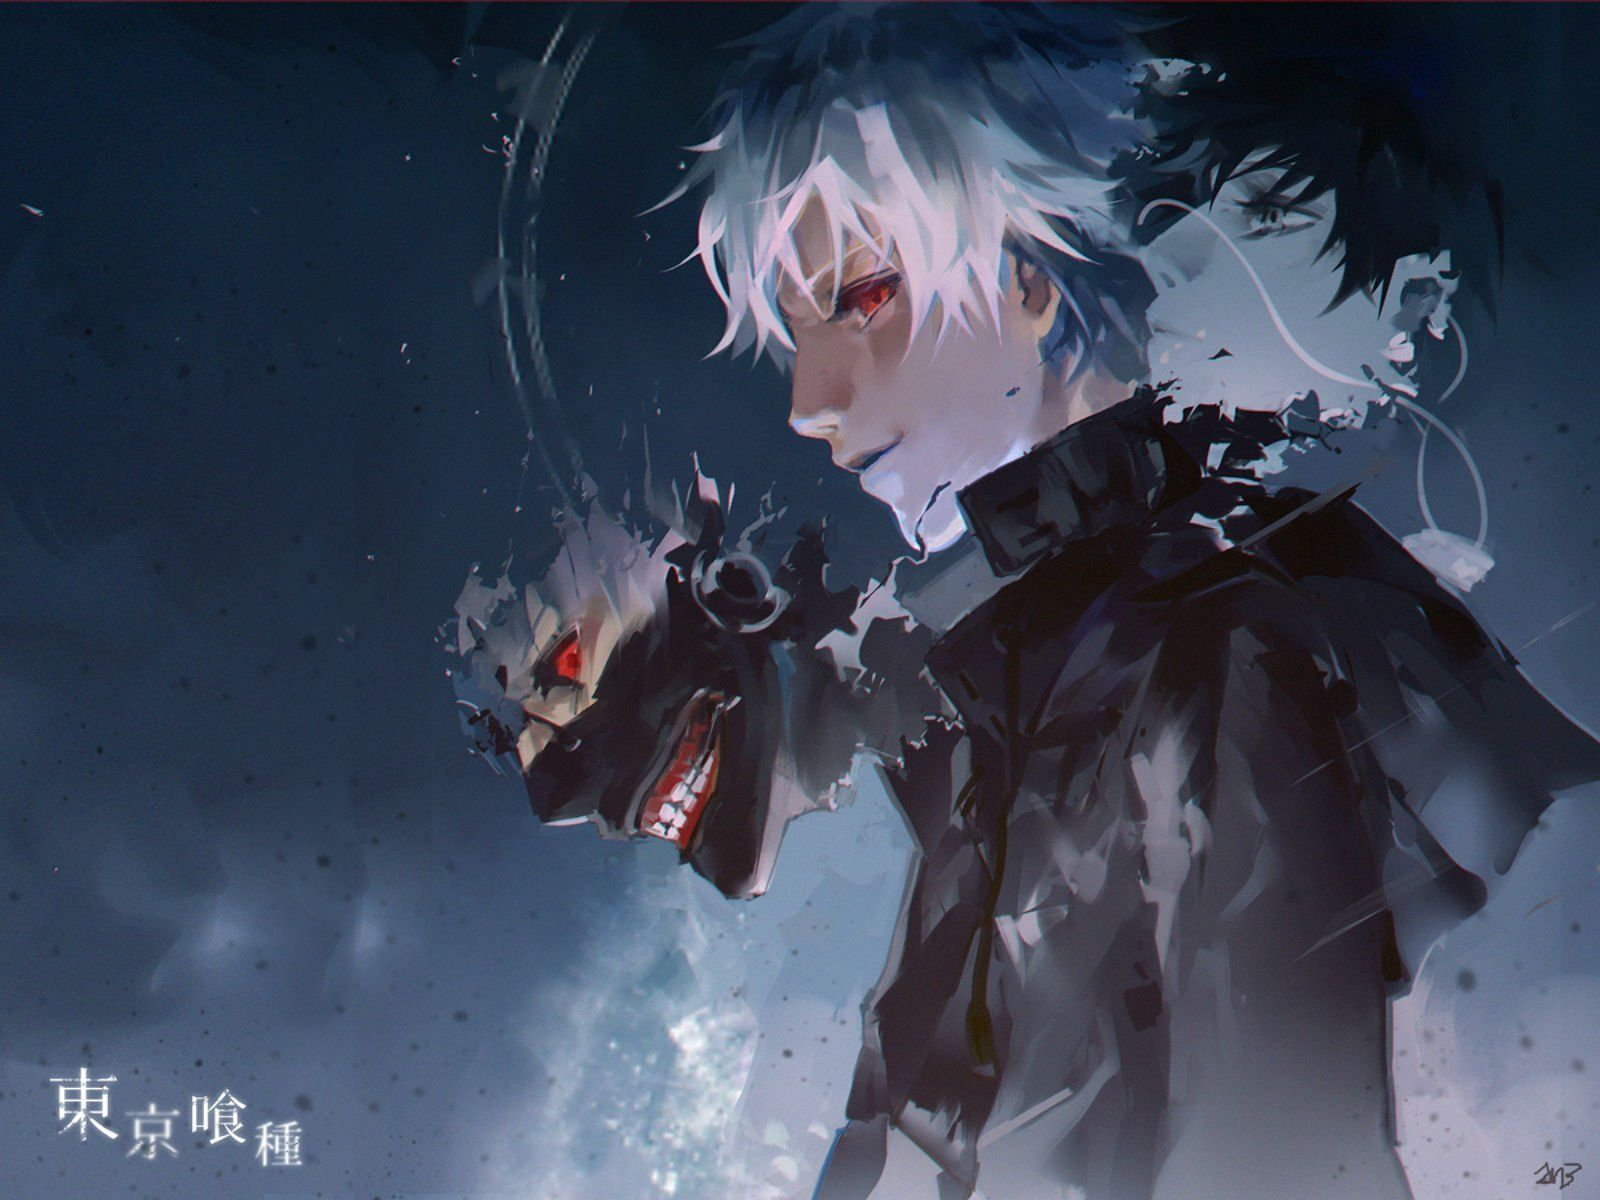 Tokyo Ghoul Re Wallpaper Hd Posted By Michelle Tremblay